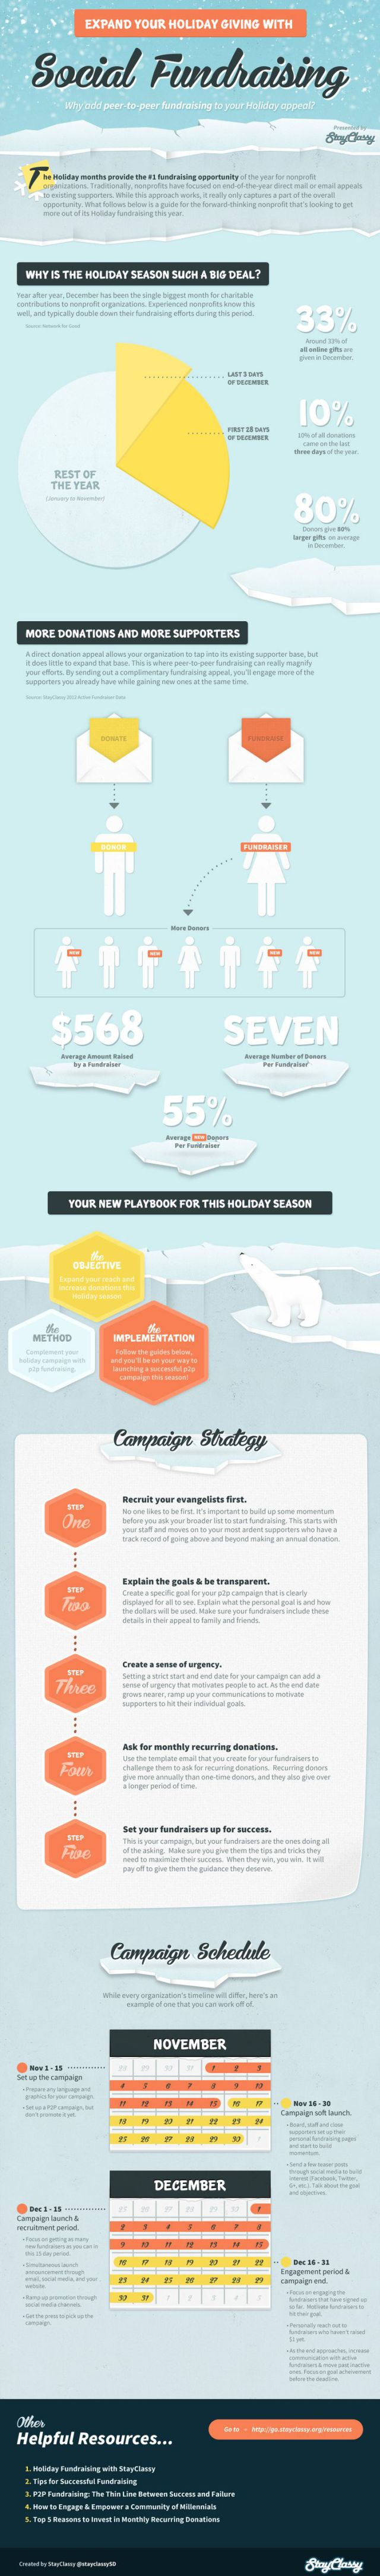 fundraising infographic People Make 80 Larger